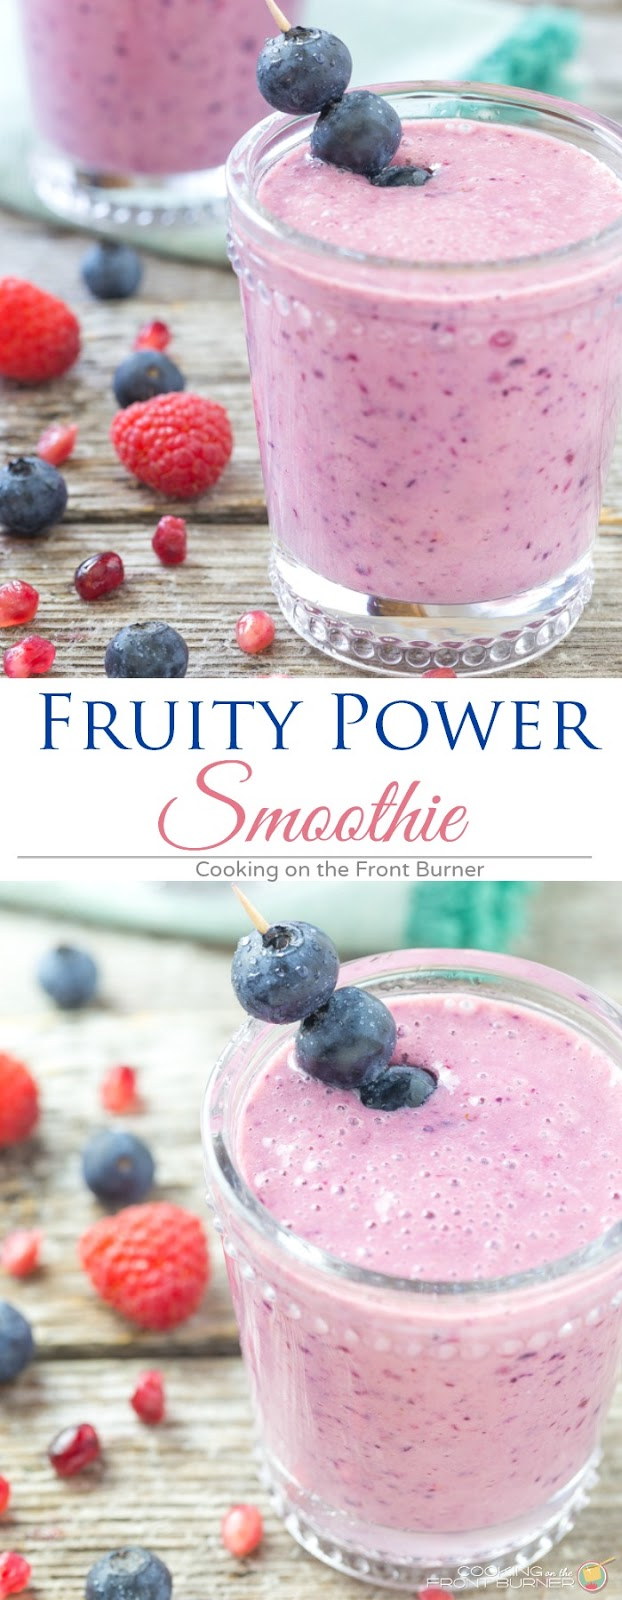 Fruity Power Smoothie | Cooking on the Front Buurner